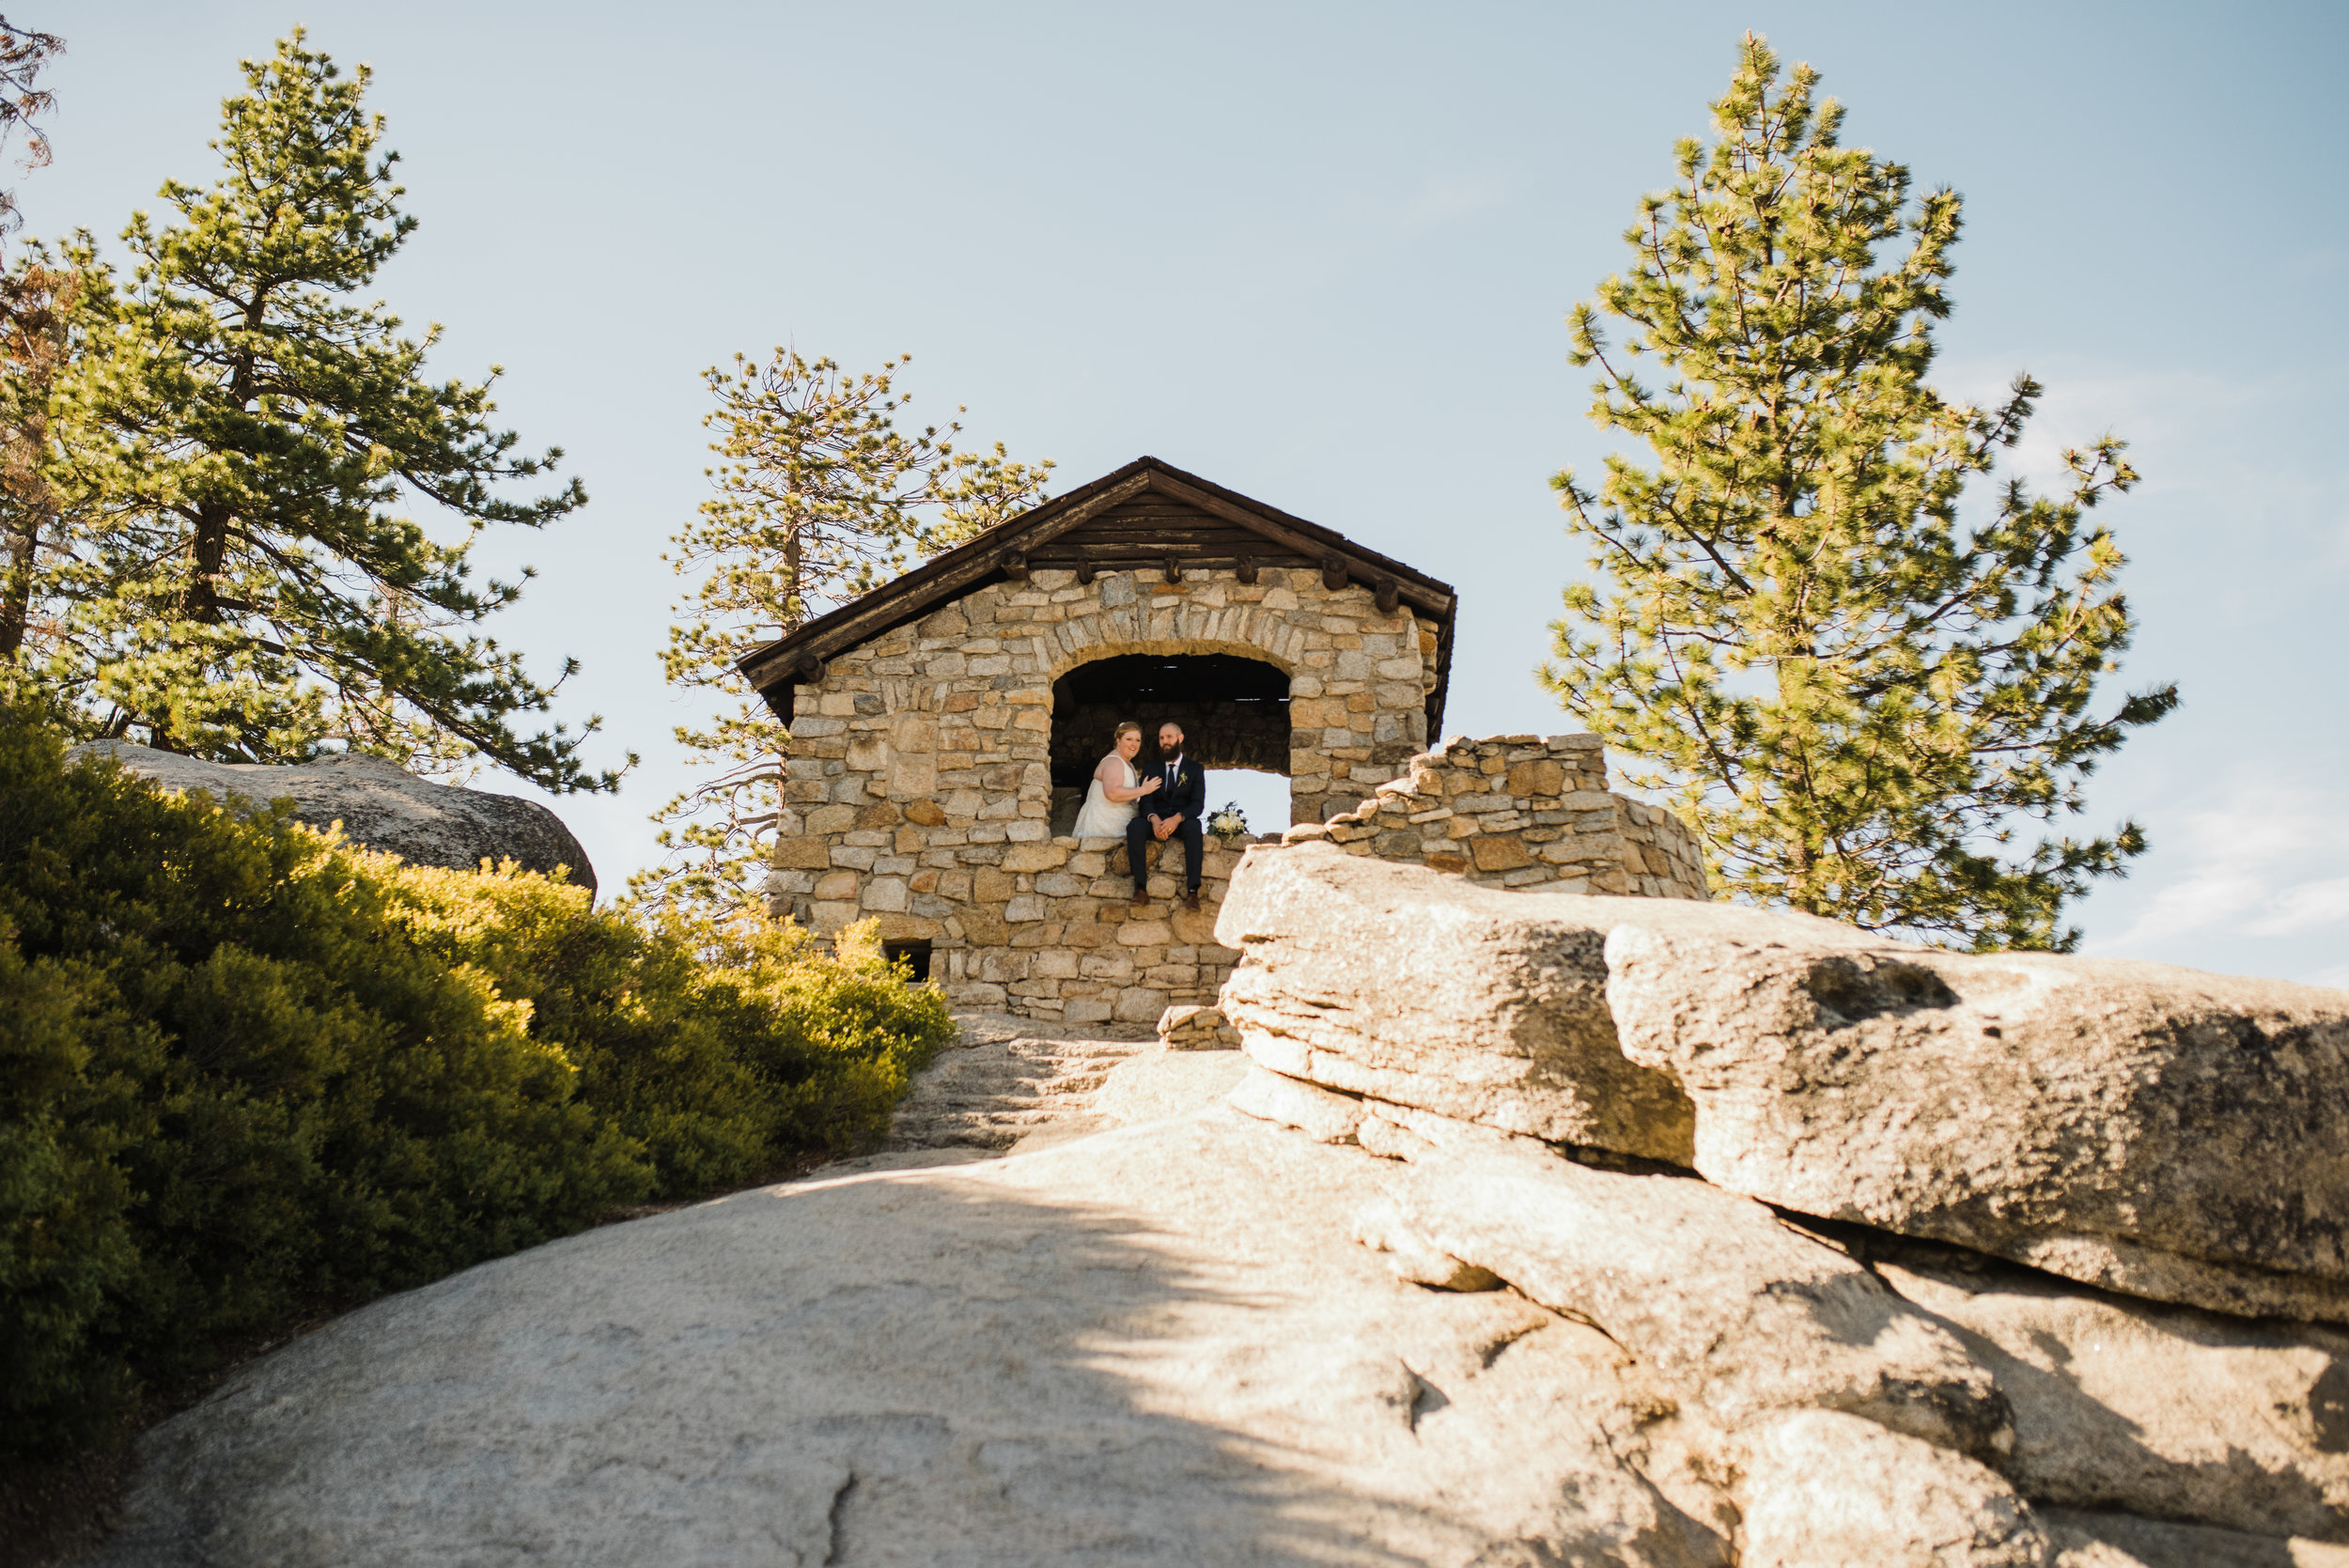 Glacier Point Yosemite Geology Hut Built in the 1920's is a beautiful spot for some romantic portraits!